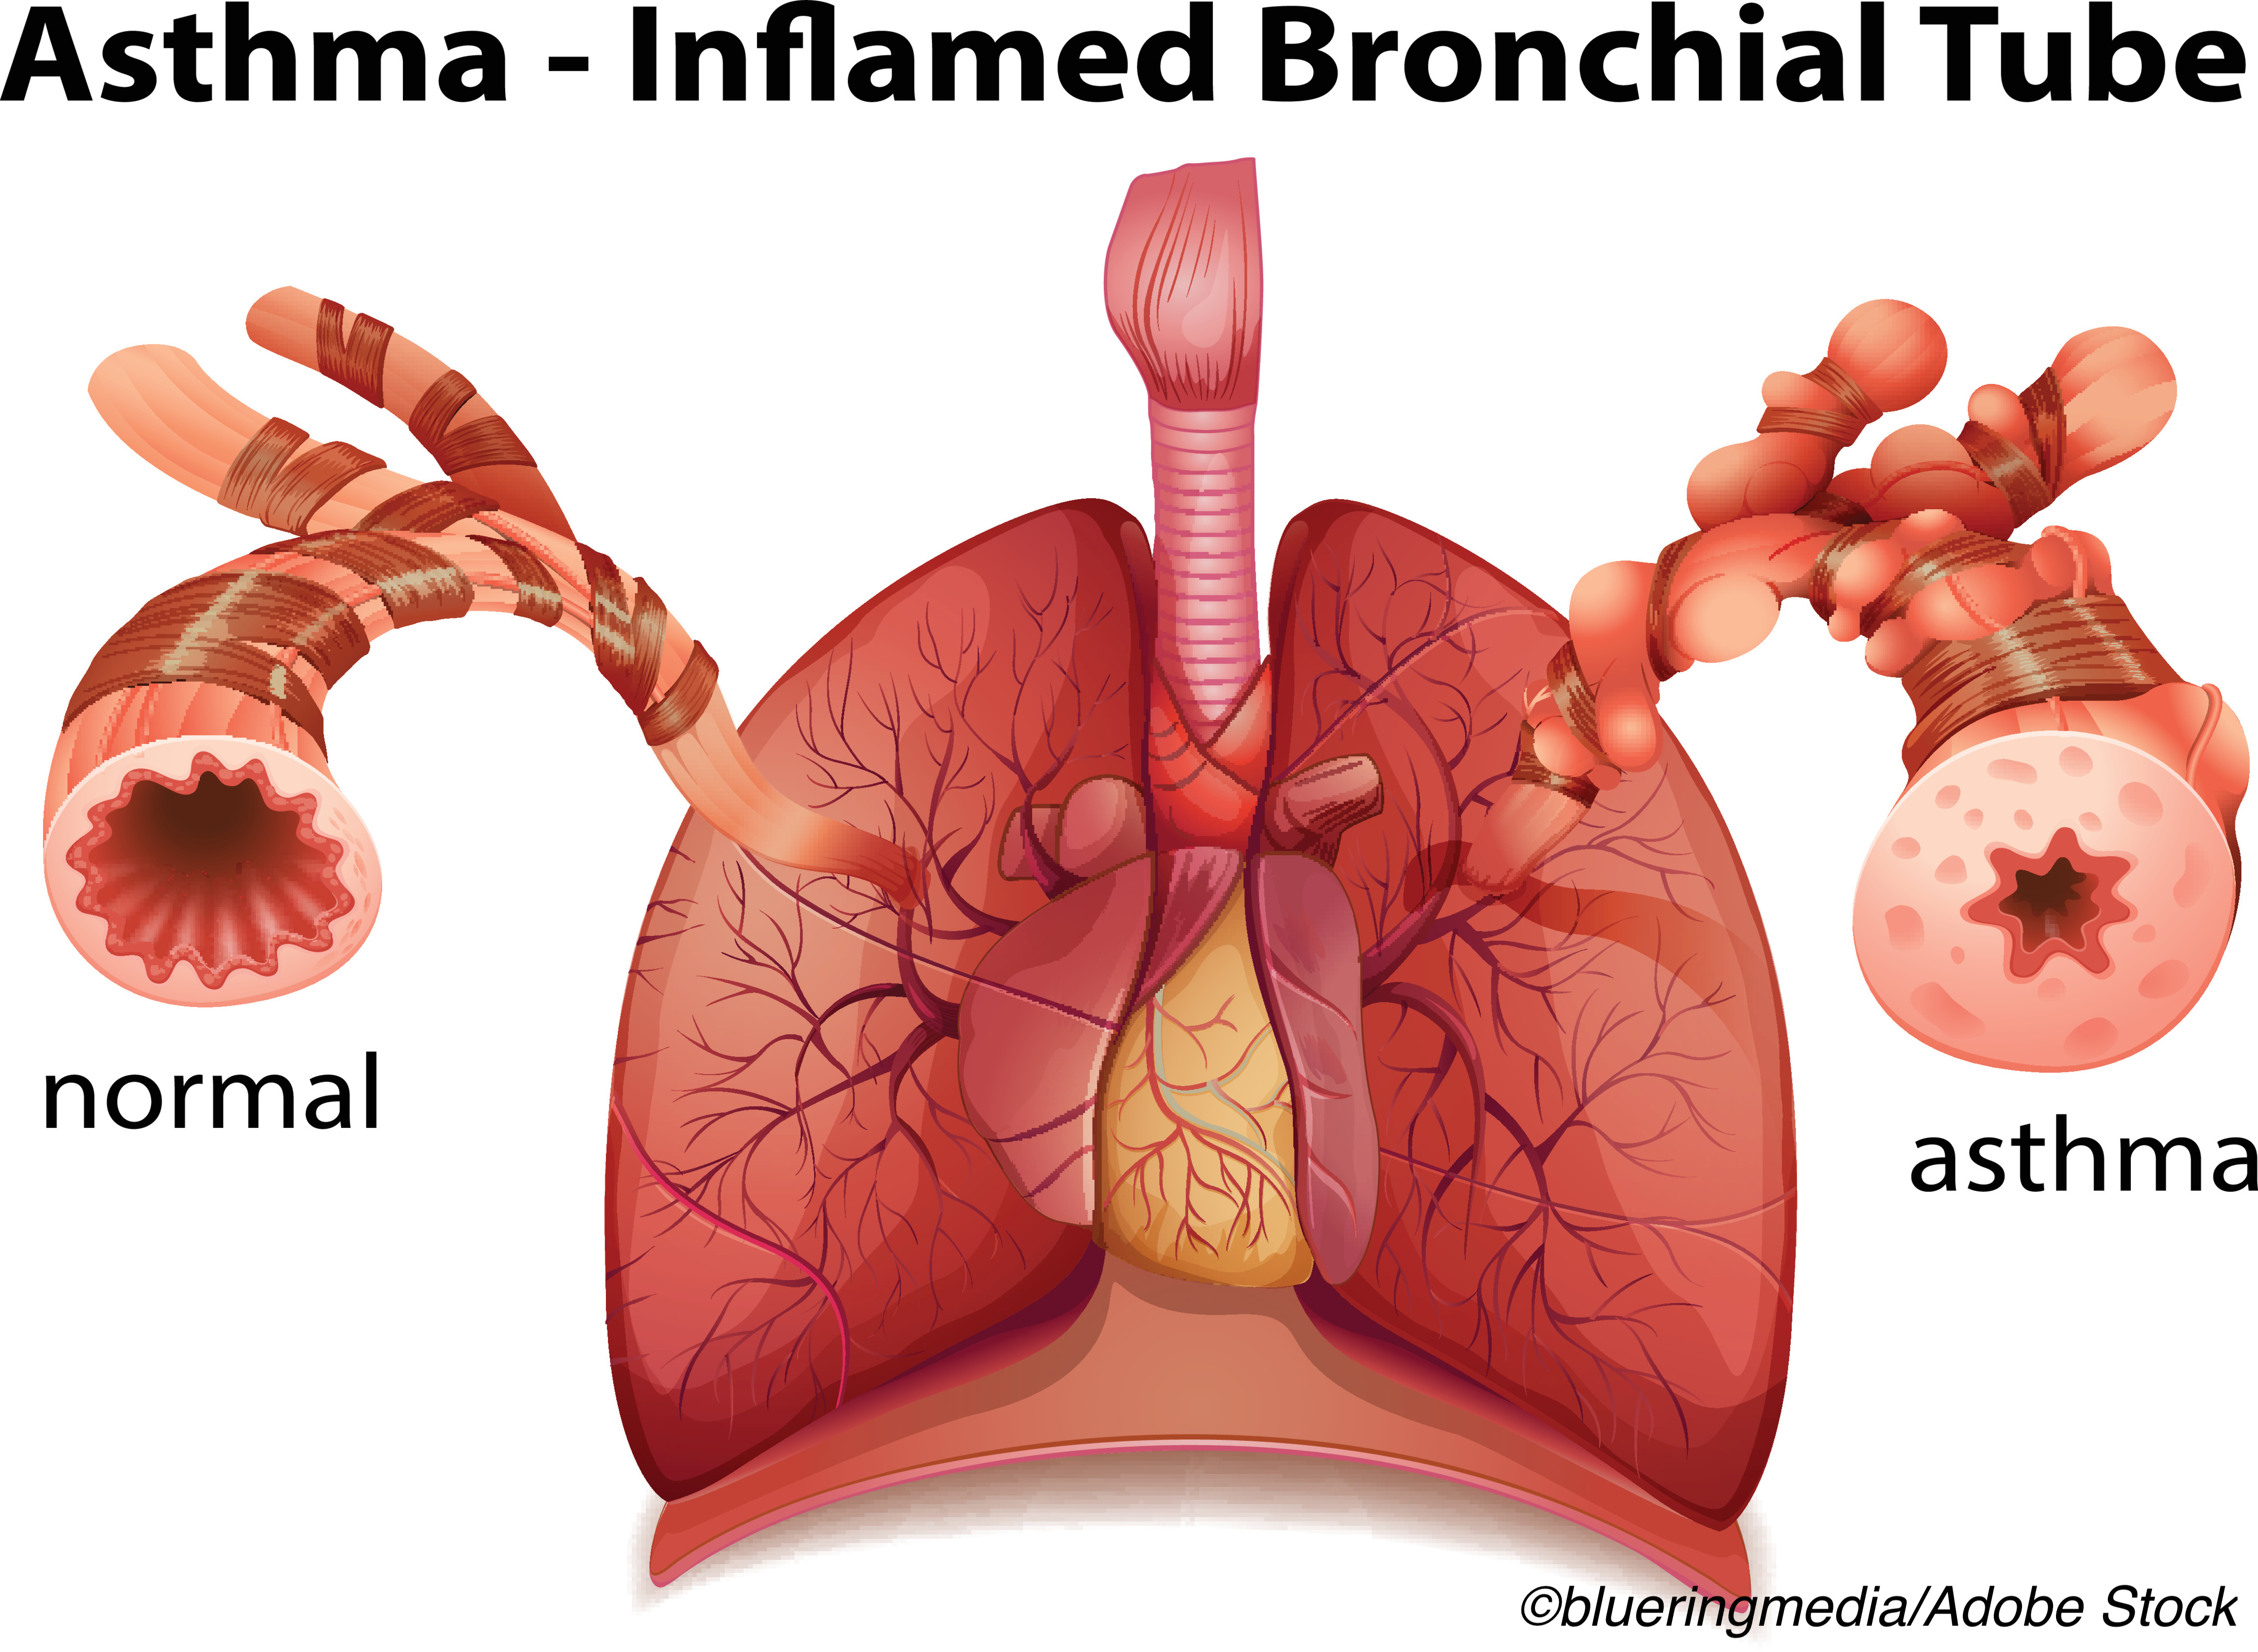 CHEST: Bronchial Thermoplasty Demonstrates Durable Benefits for Asthma